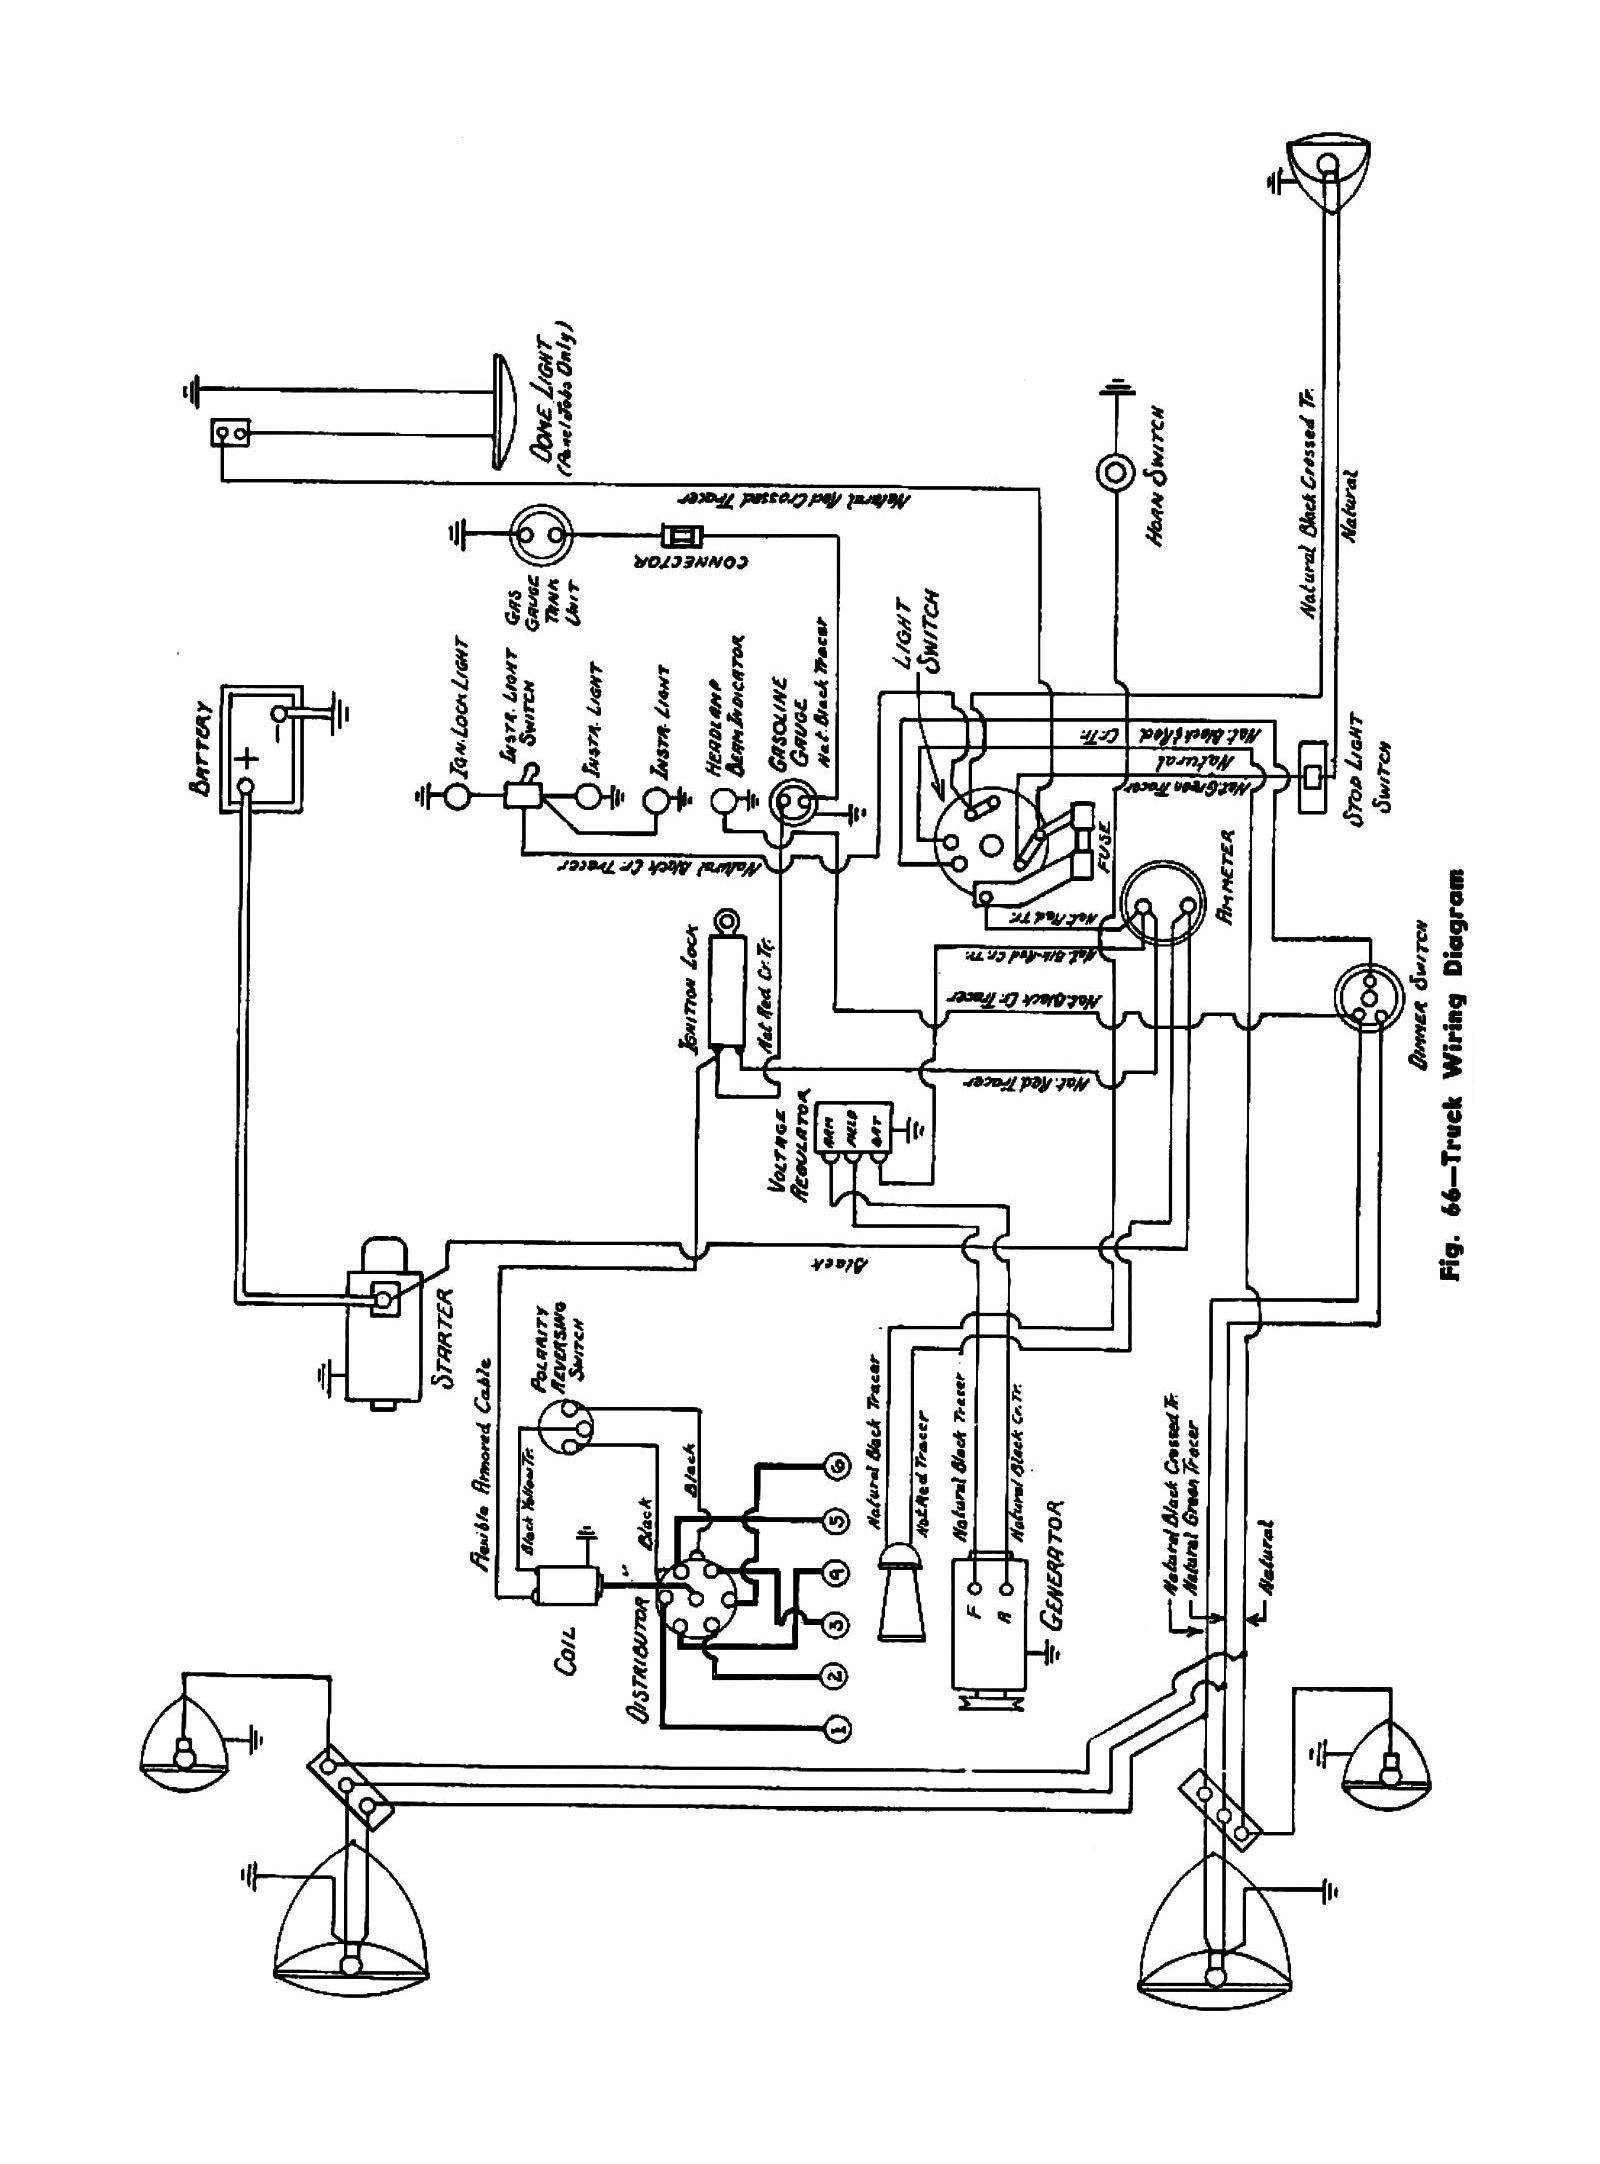 2001 Chevrolet Wiring Diagram - Detailed Schematics Diagram